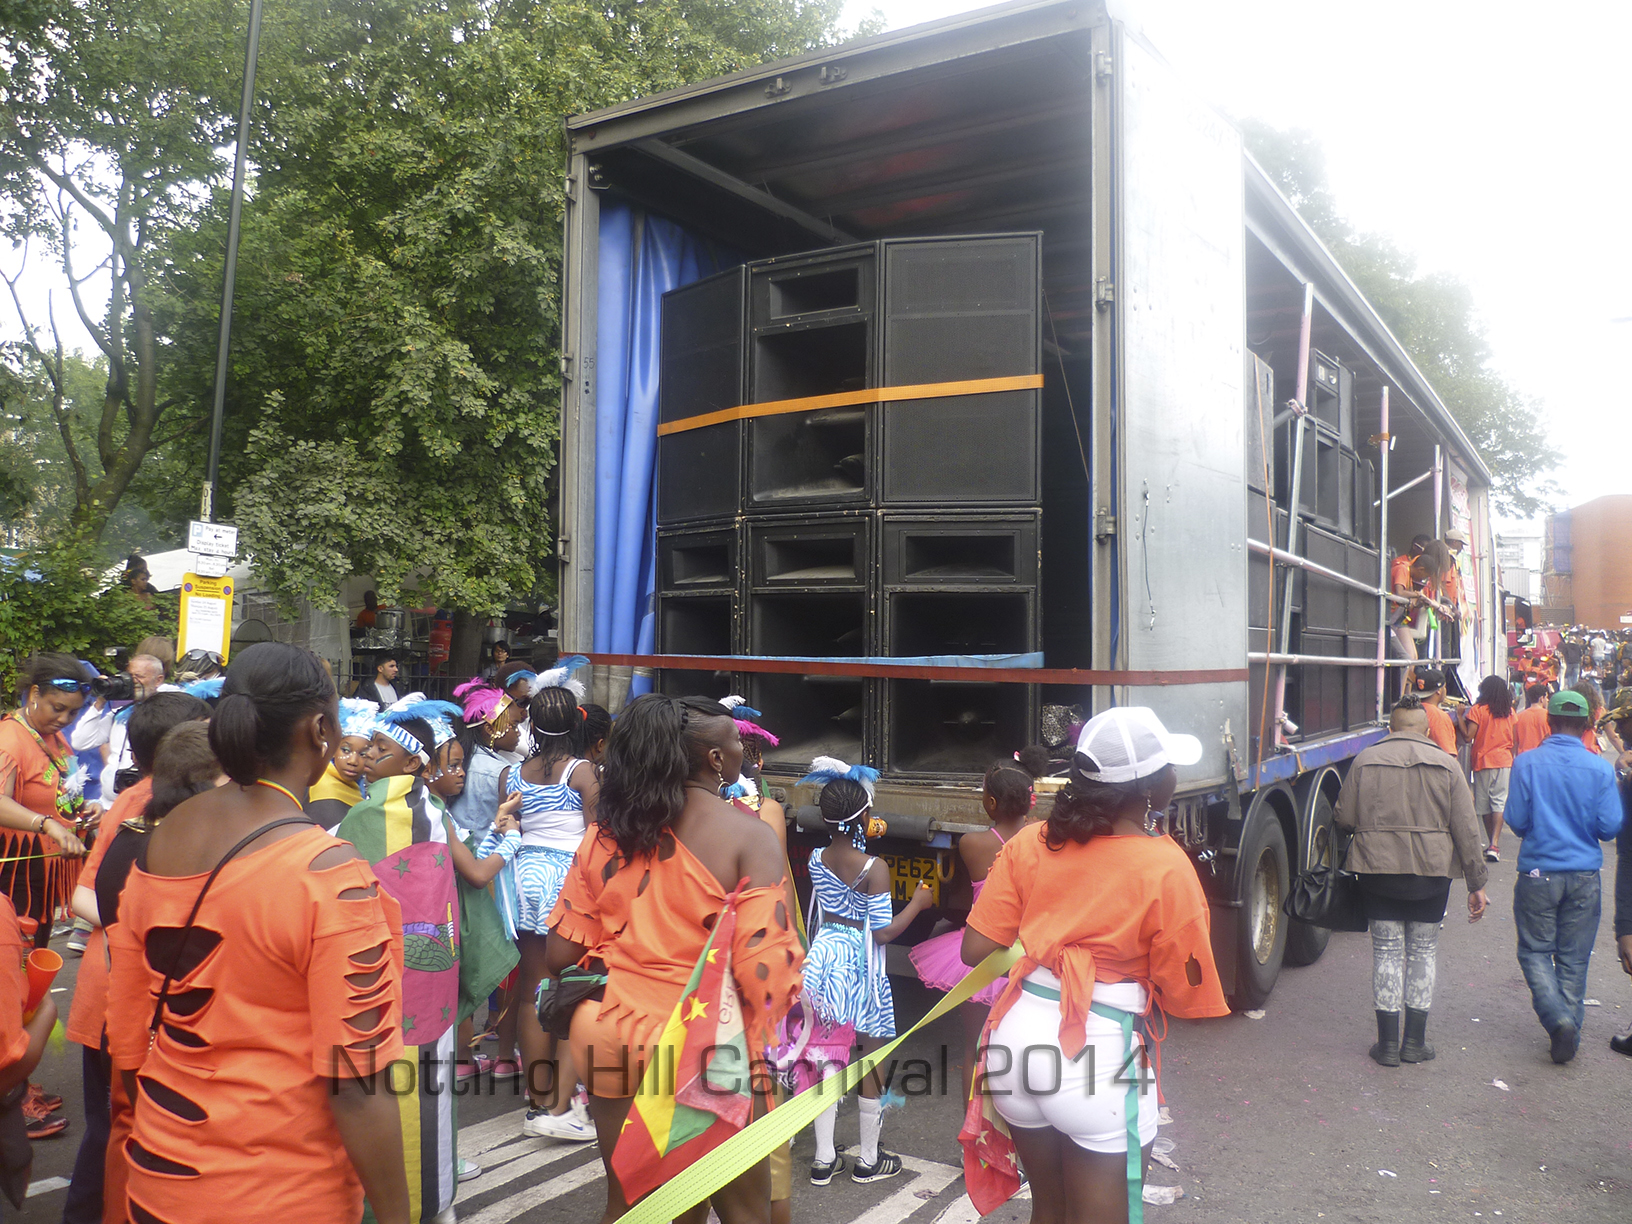 Notting-Hill-Carnival-2014-Float-Sound-System-10